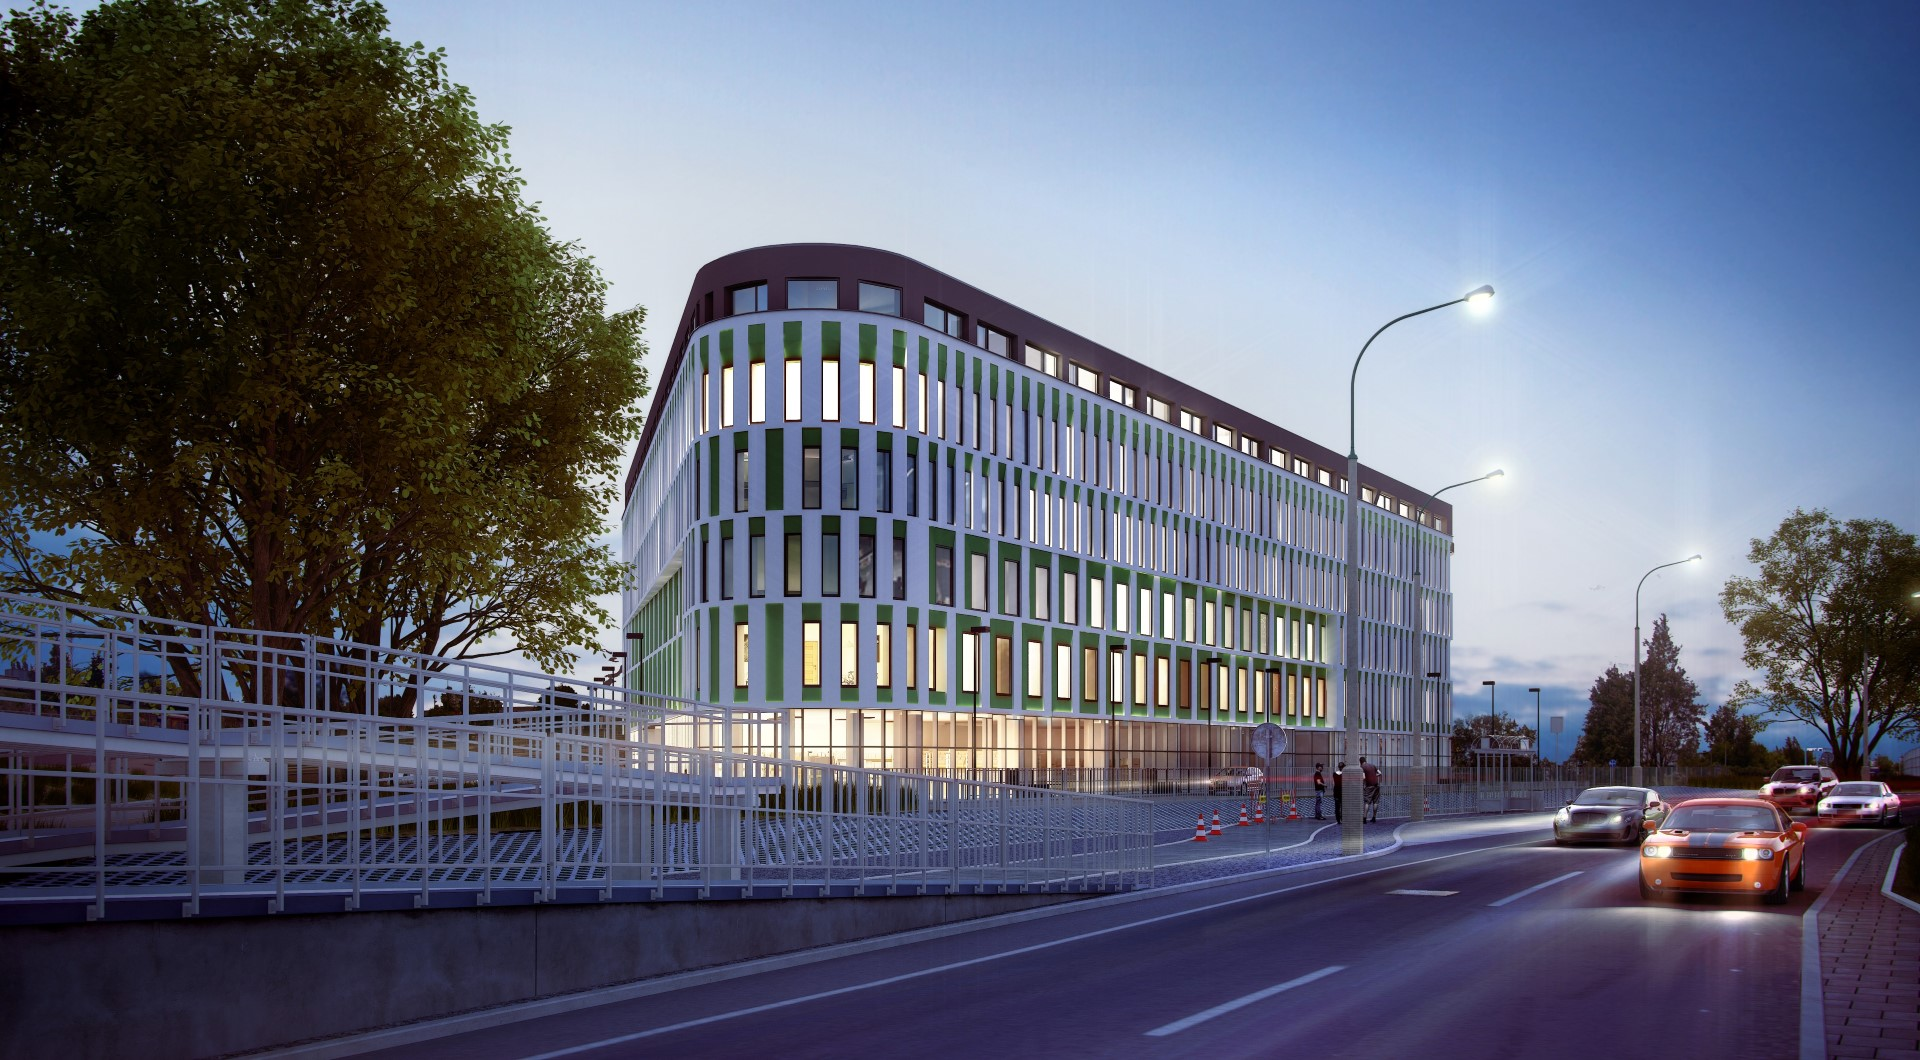 Doraco is the general contractor of the IBIS hotel in Warsaw